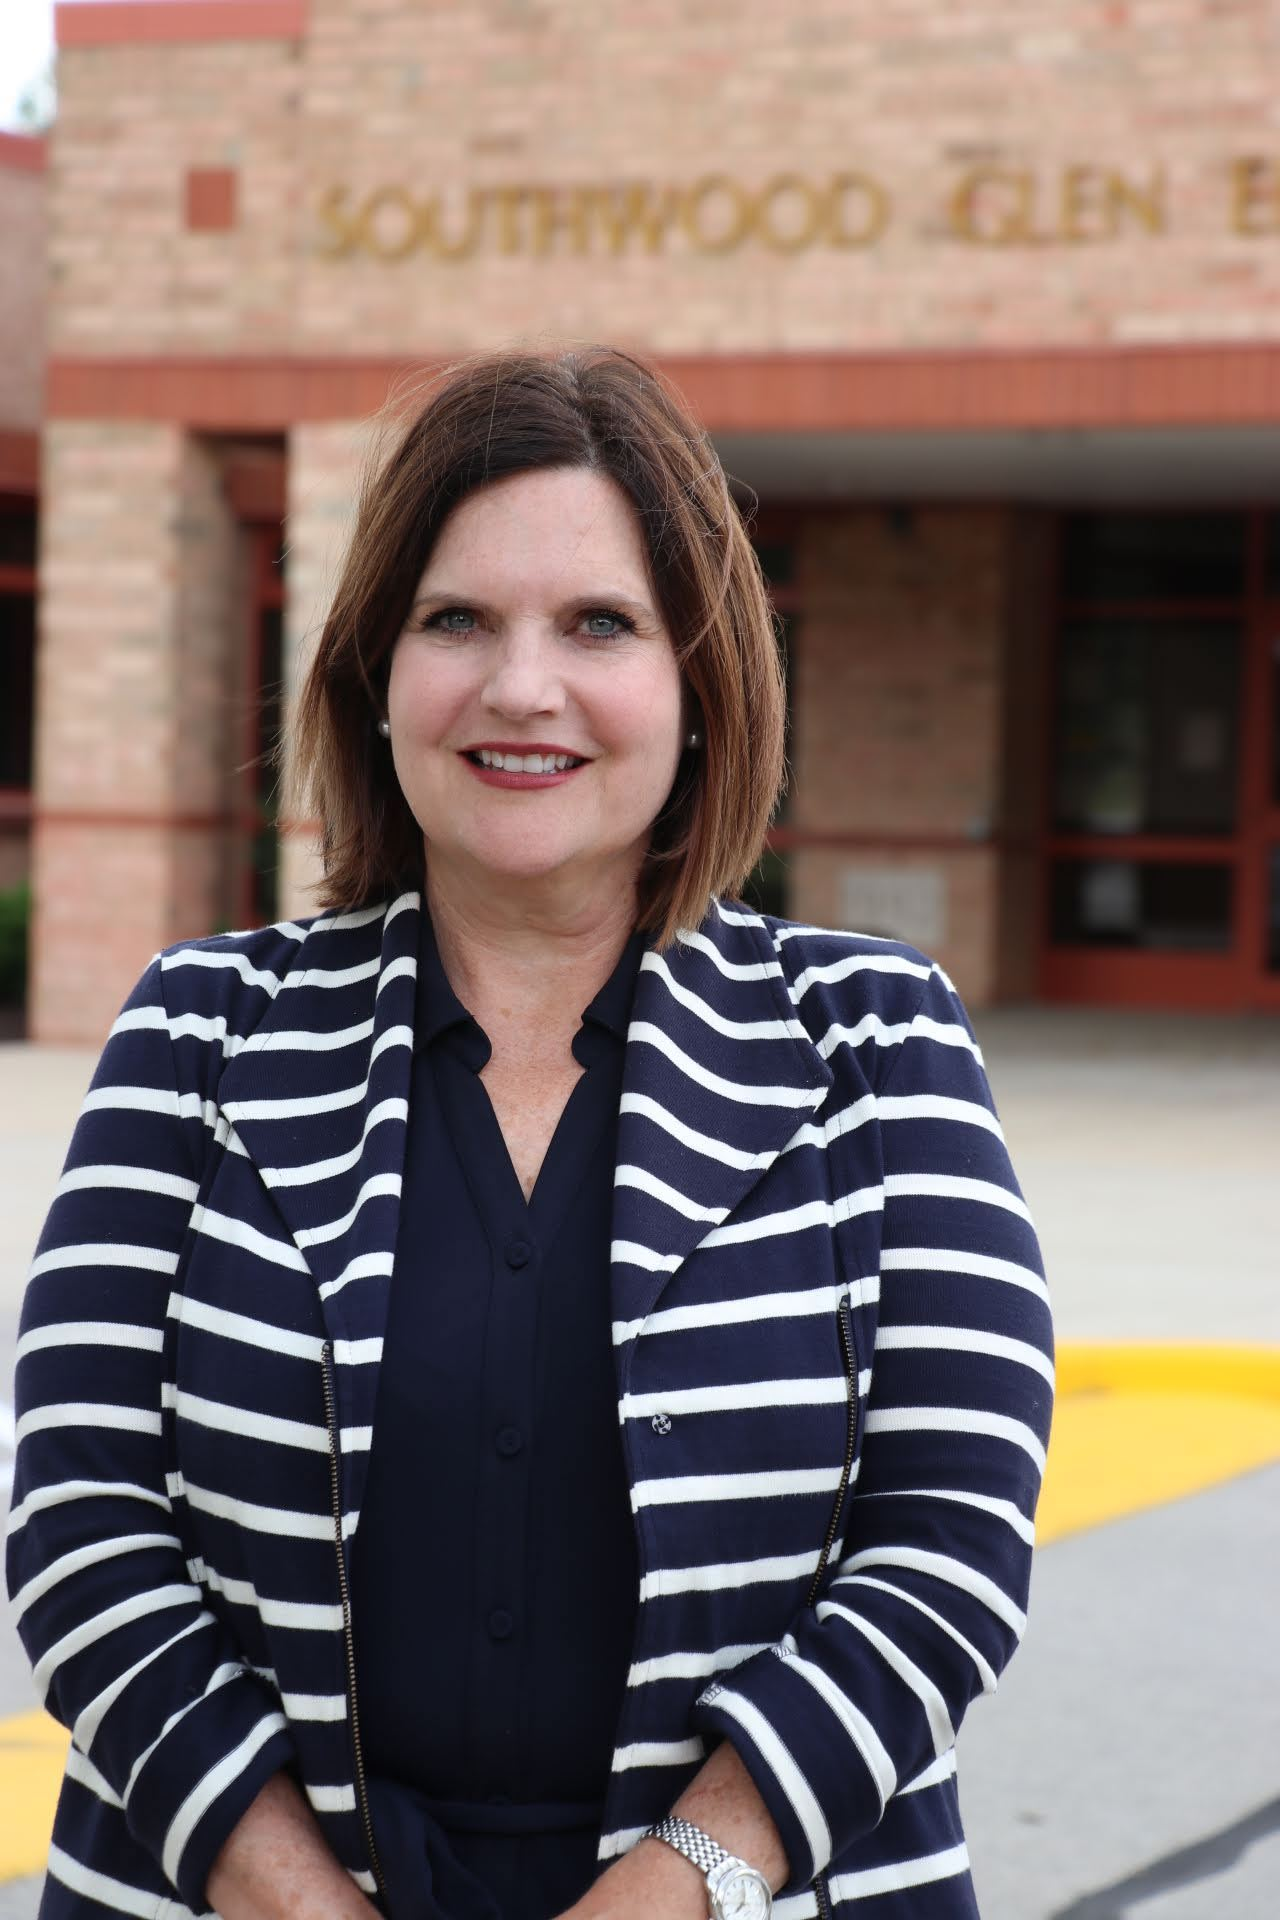 Picture of Bridget Mowbray, Principal